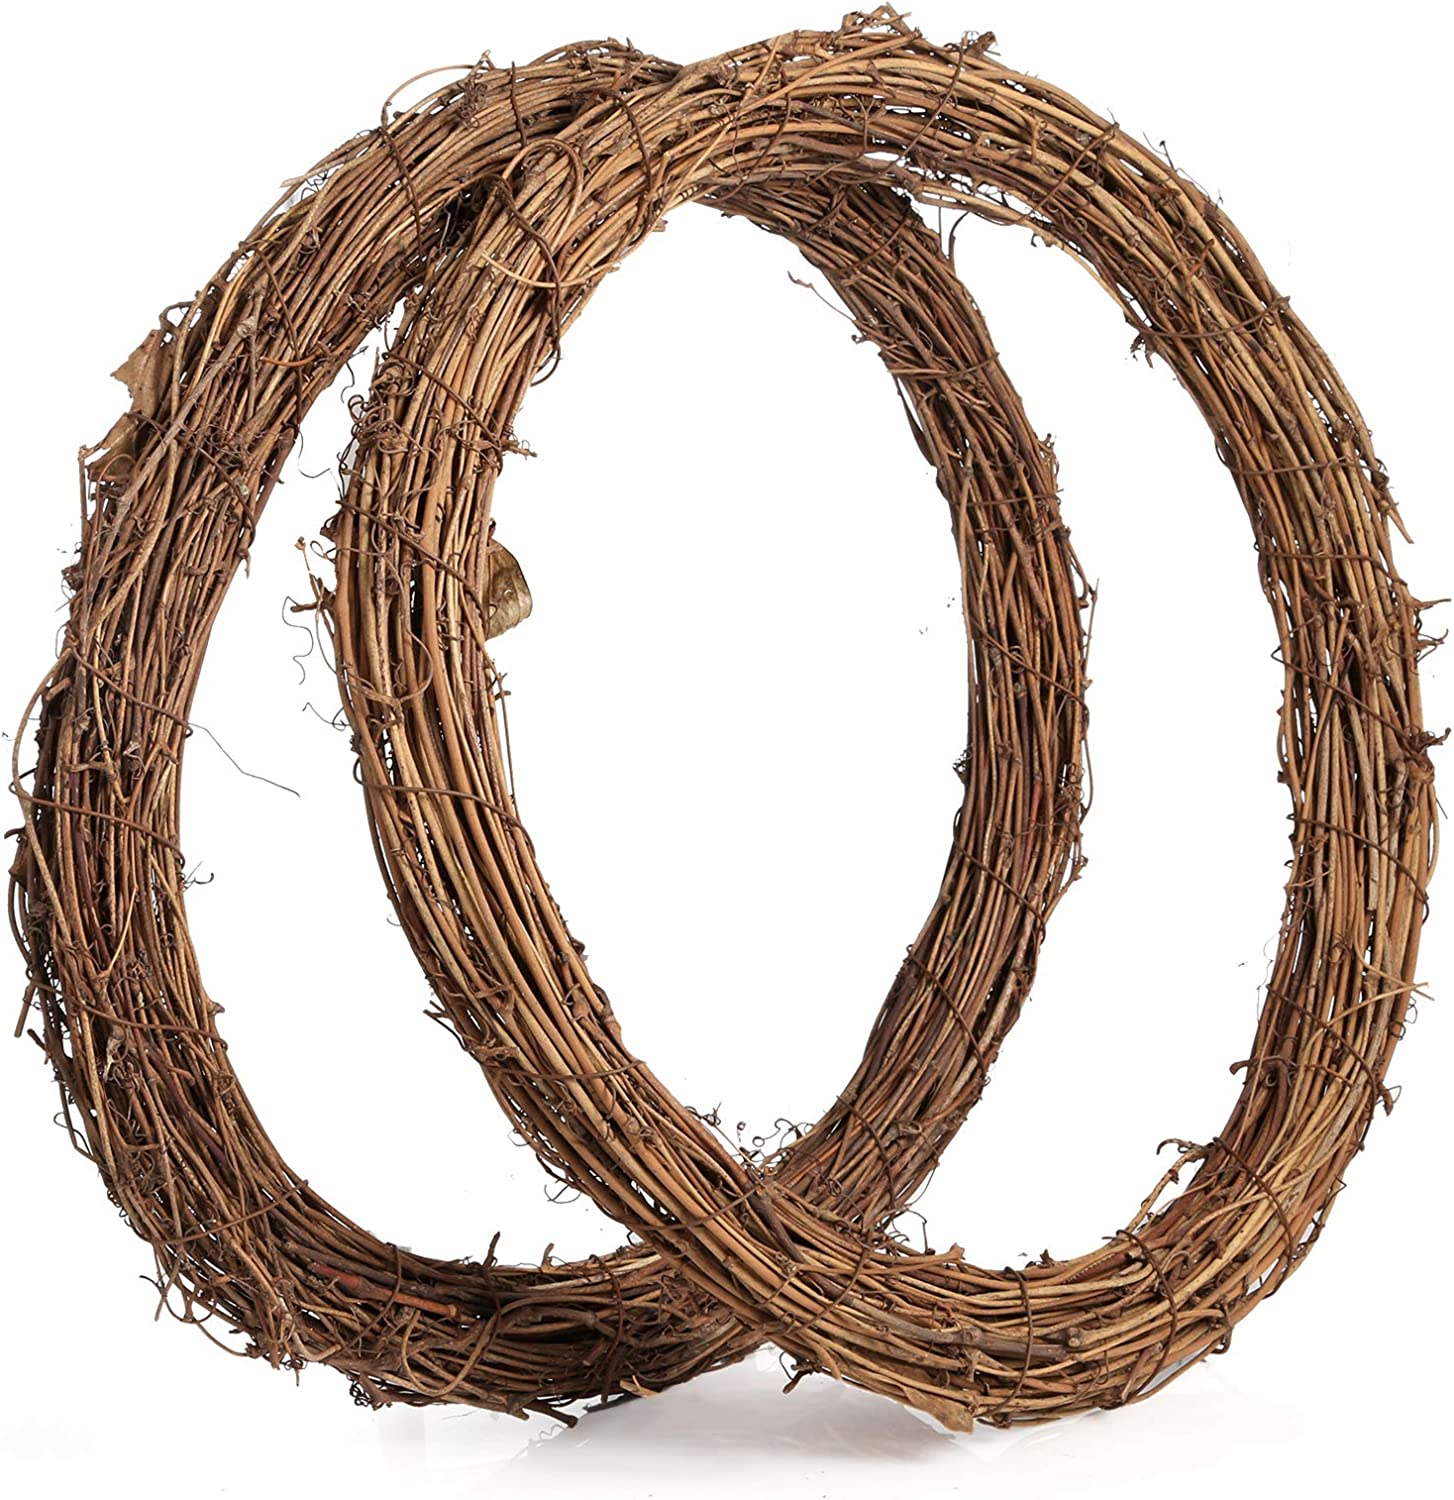 Sntieecr 2 PCS 14 Inch Large Natural Grapevine Wreathes Vine Branch Wreath Christmas Rattan Wreath Garland Decoration for DIY Christmas Craft or Wedding Decors